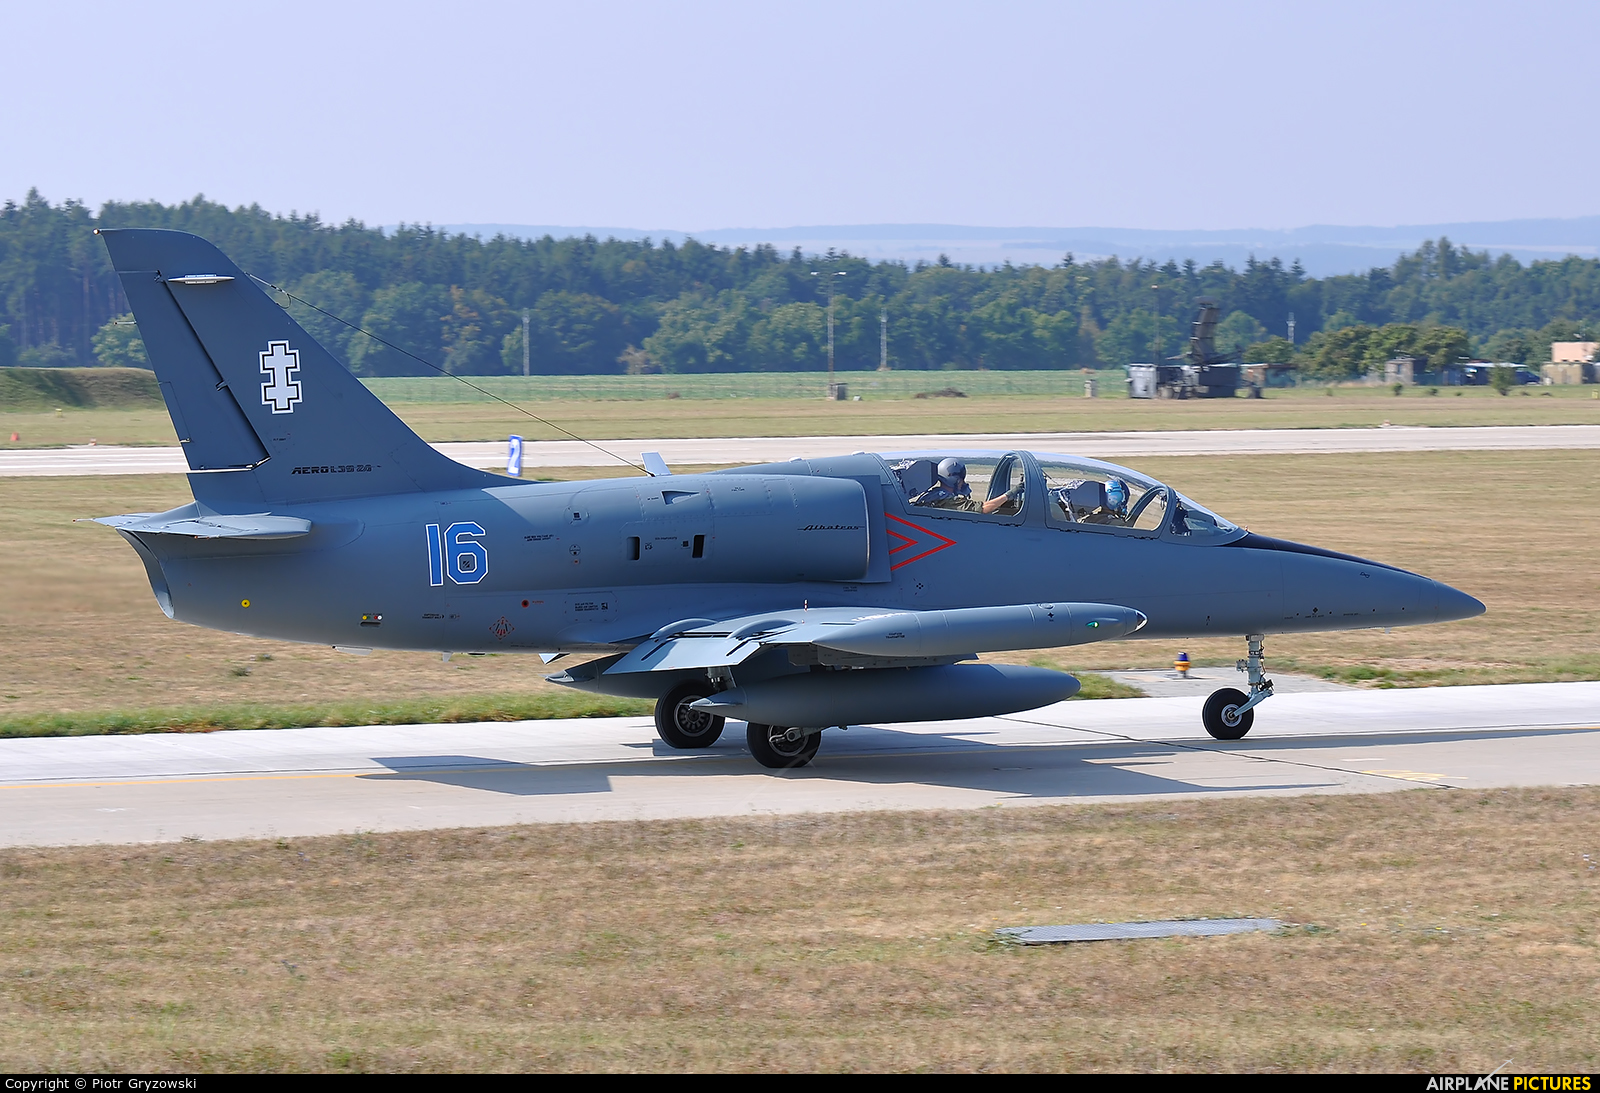 Lithuania - Air Force 16 aircraft at Náměšť nad Oslavou